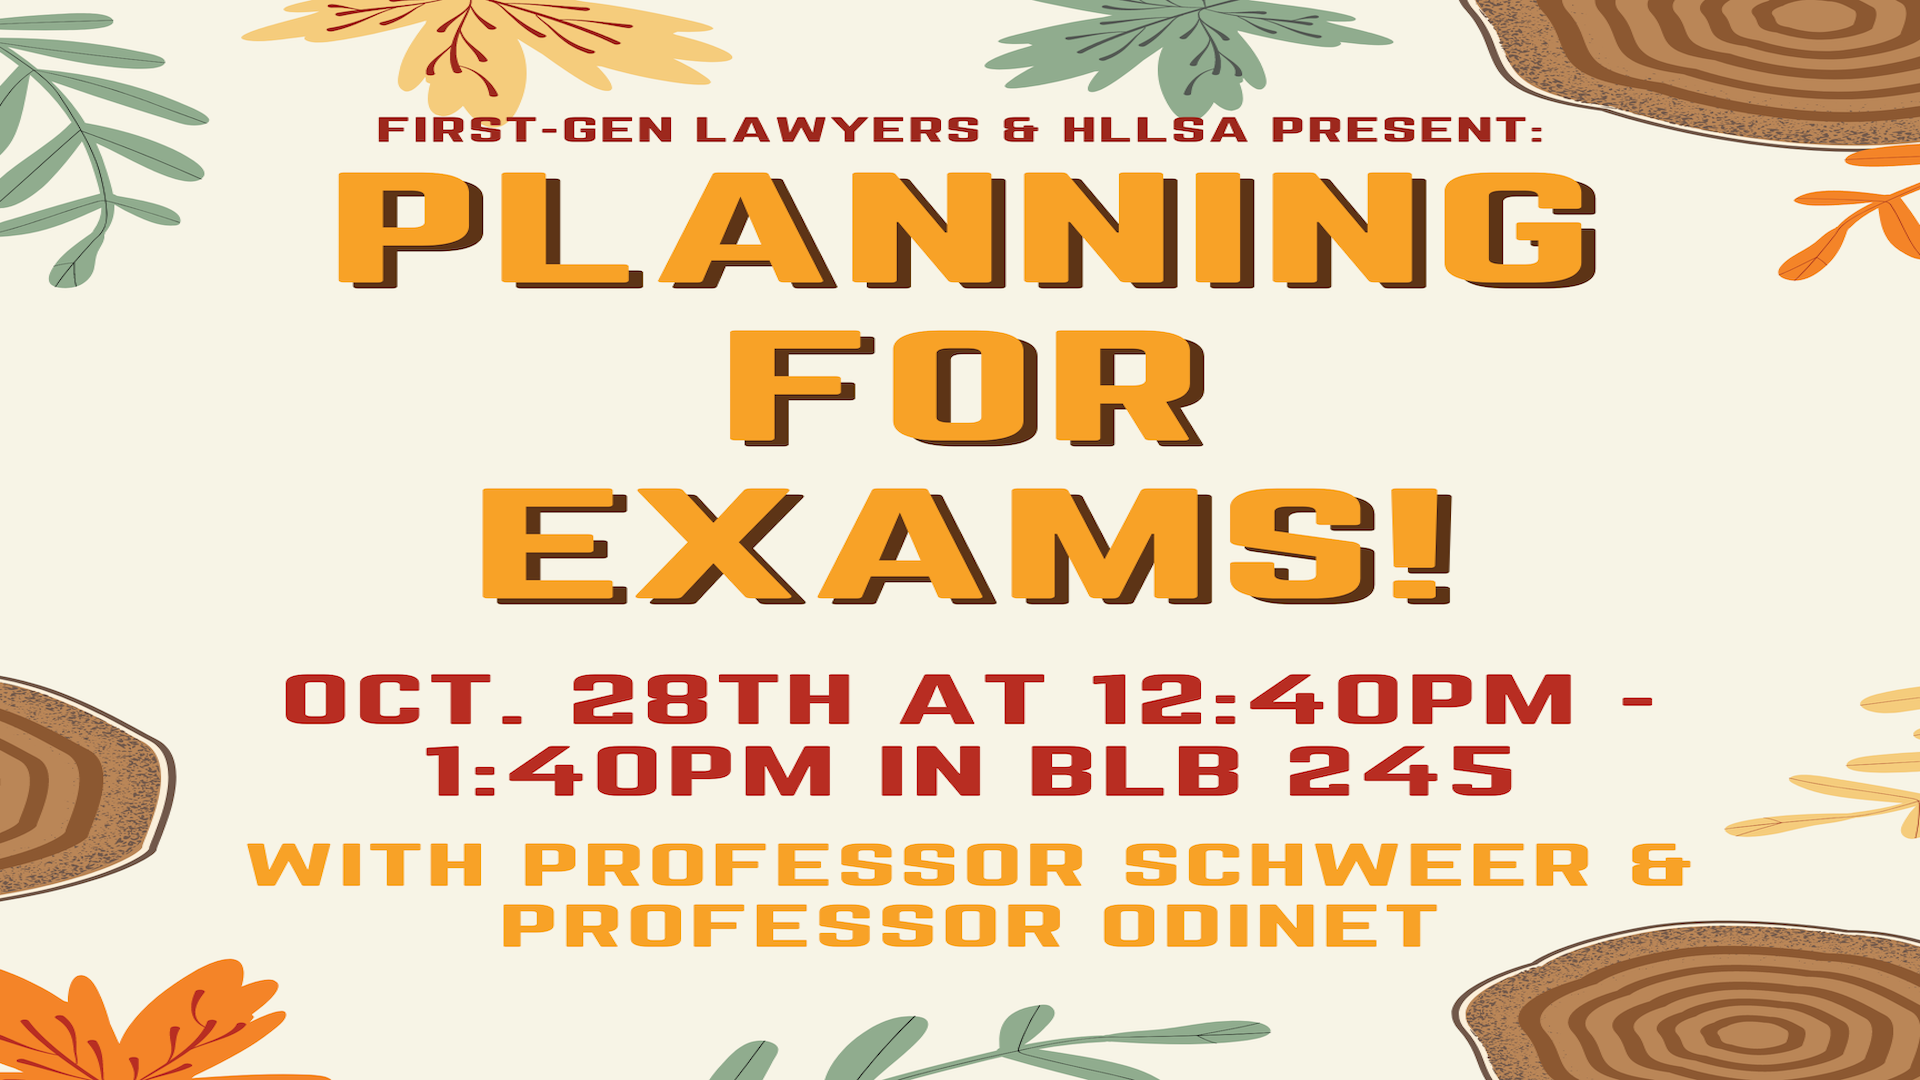 First Gen Lawyers & HLLSA Present: Planning For Exams!    Oct. 28th at 12:40pm - 1:40pm in BLB 245        With Professor Schweer & Professor Professor Odinet